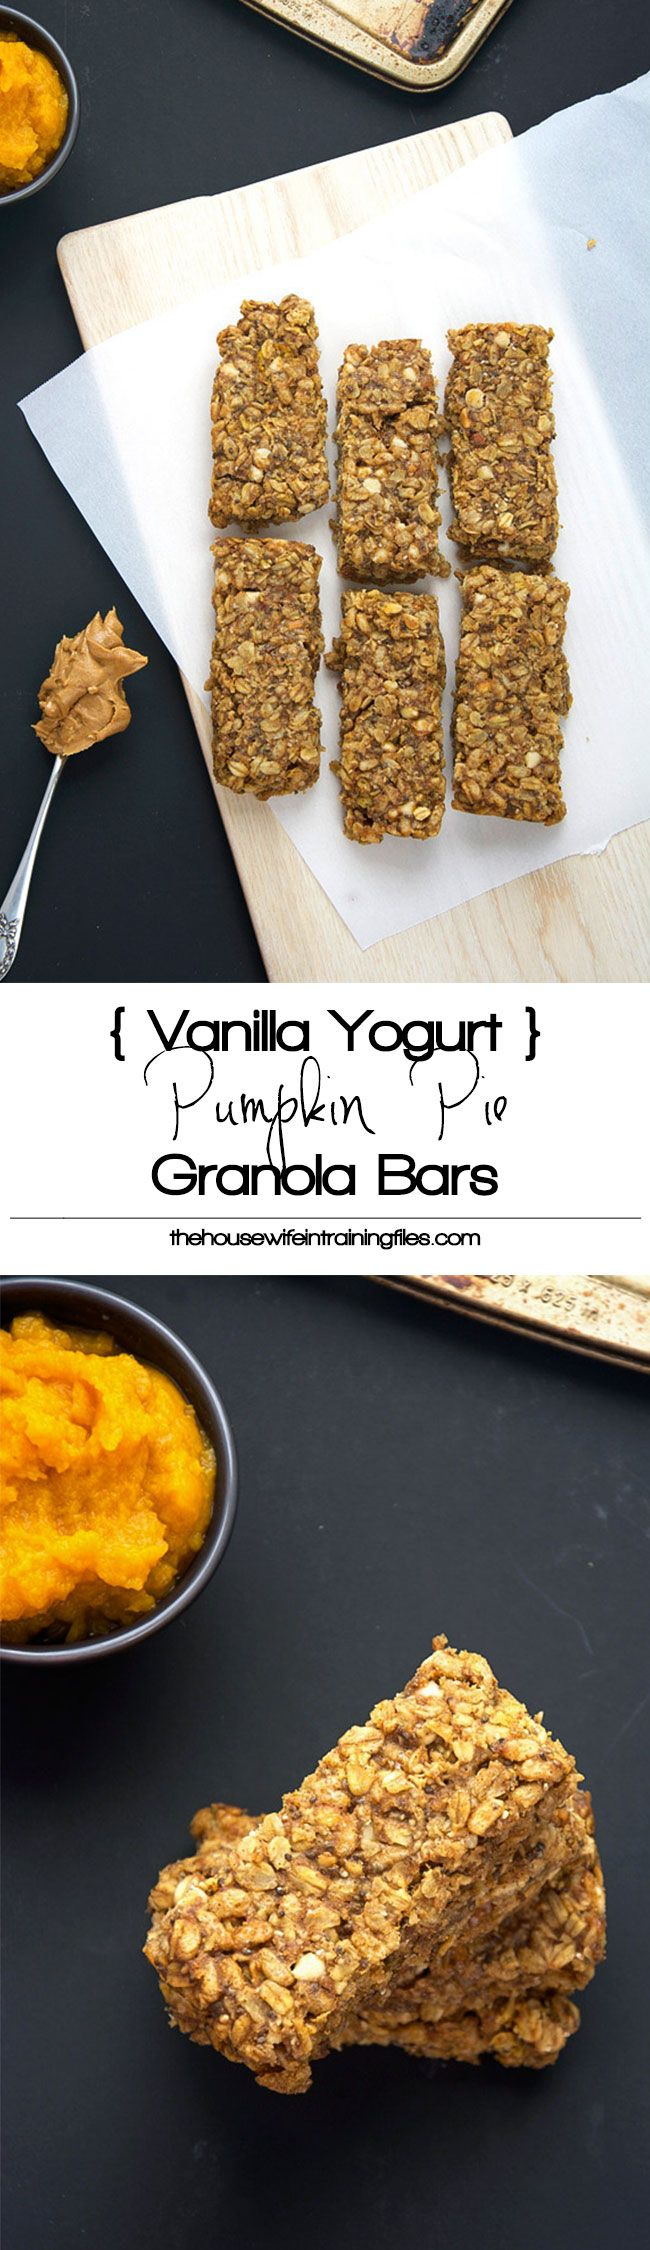 ... pumpkin pie granola yogurt pumpkin homemade granola bars pumpkin pie